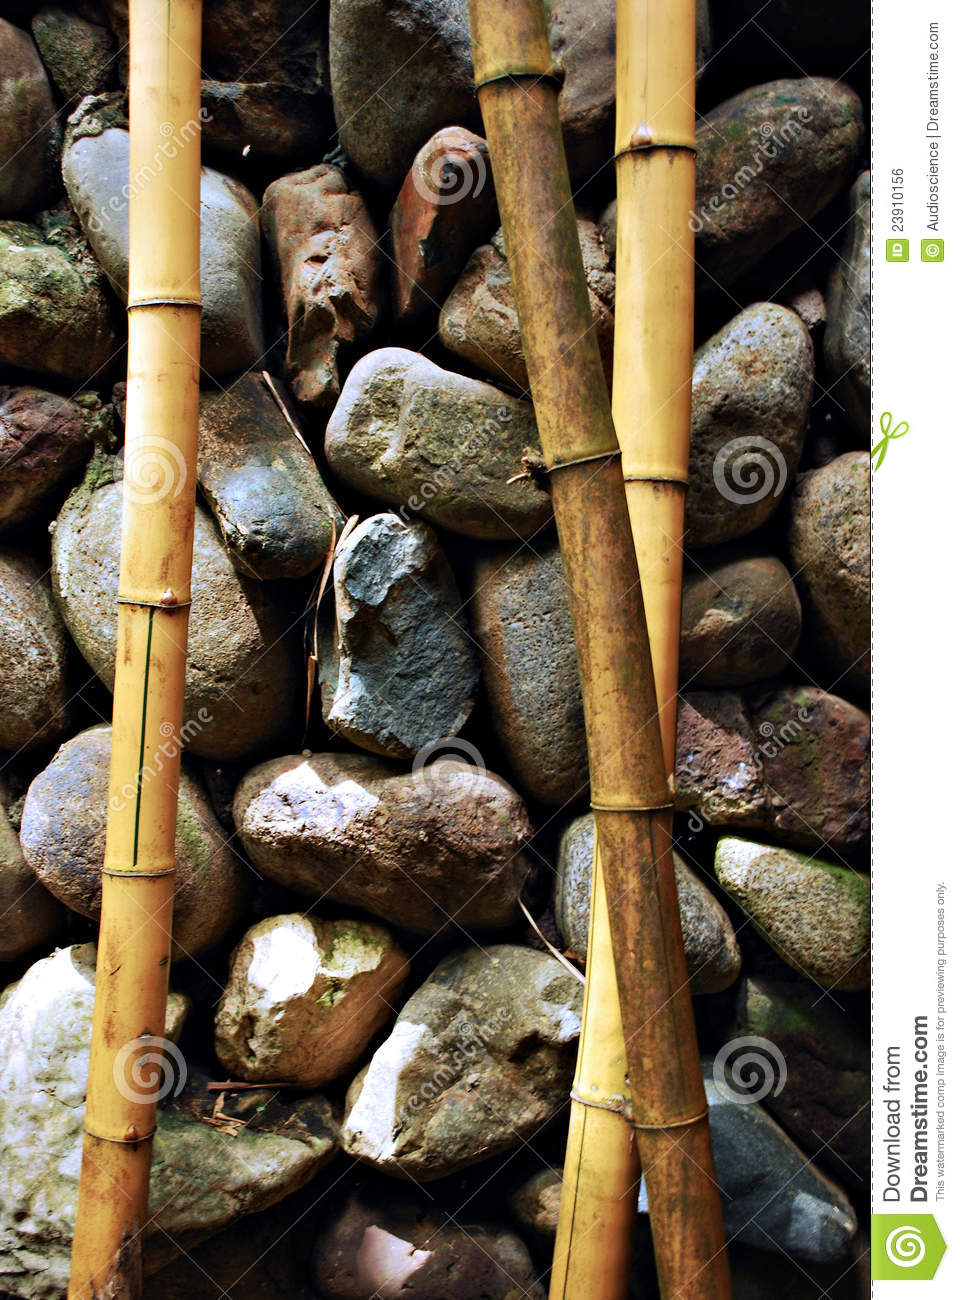 Zen Bamboo Branches and Stones Background